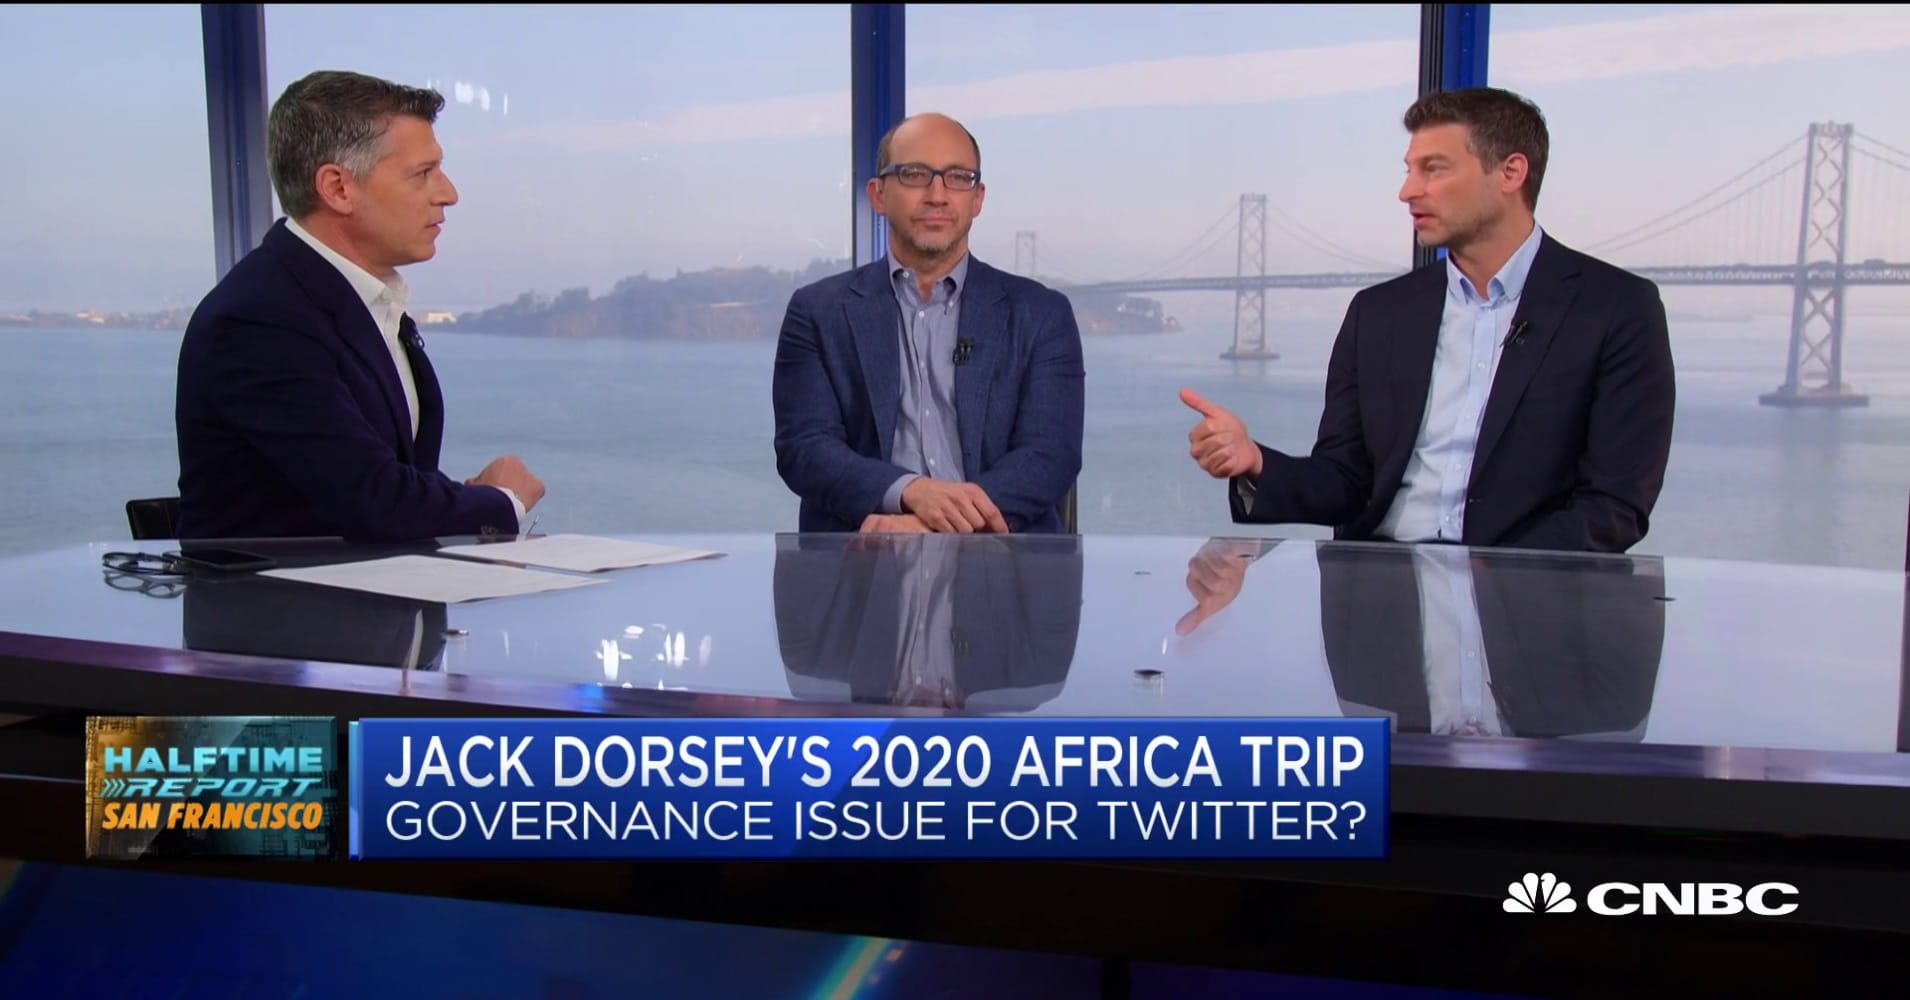 Former Twitter Ceo On Jack Dorsey S Tenure And Move To Africa